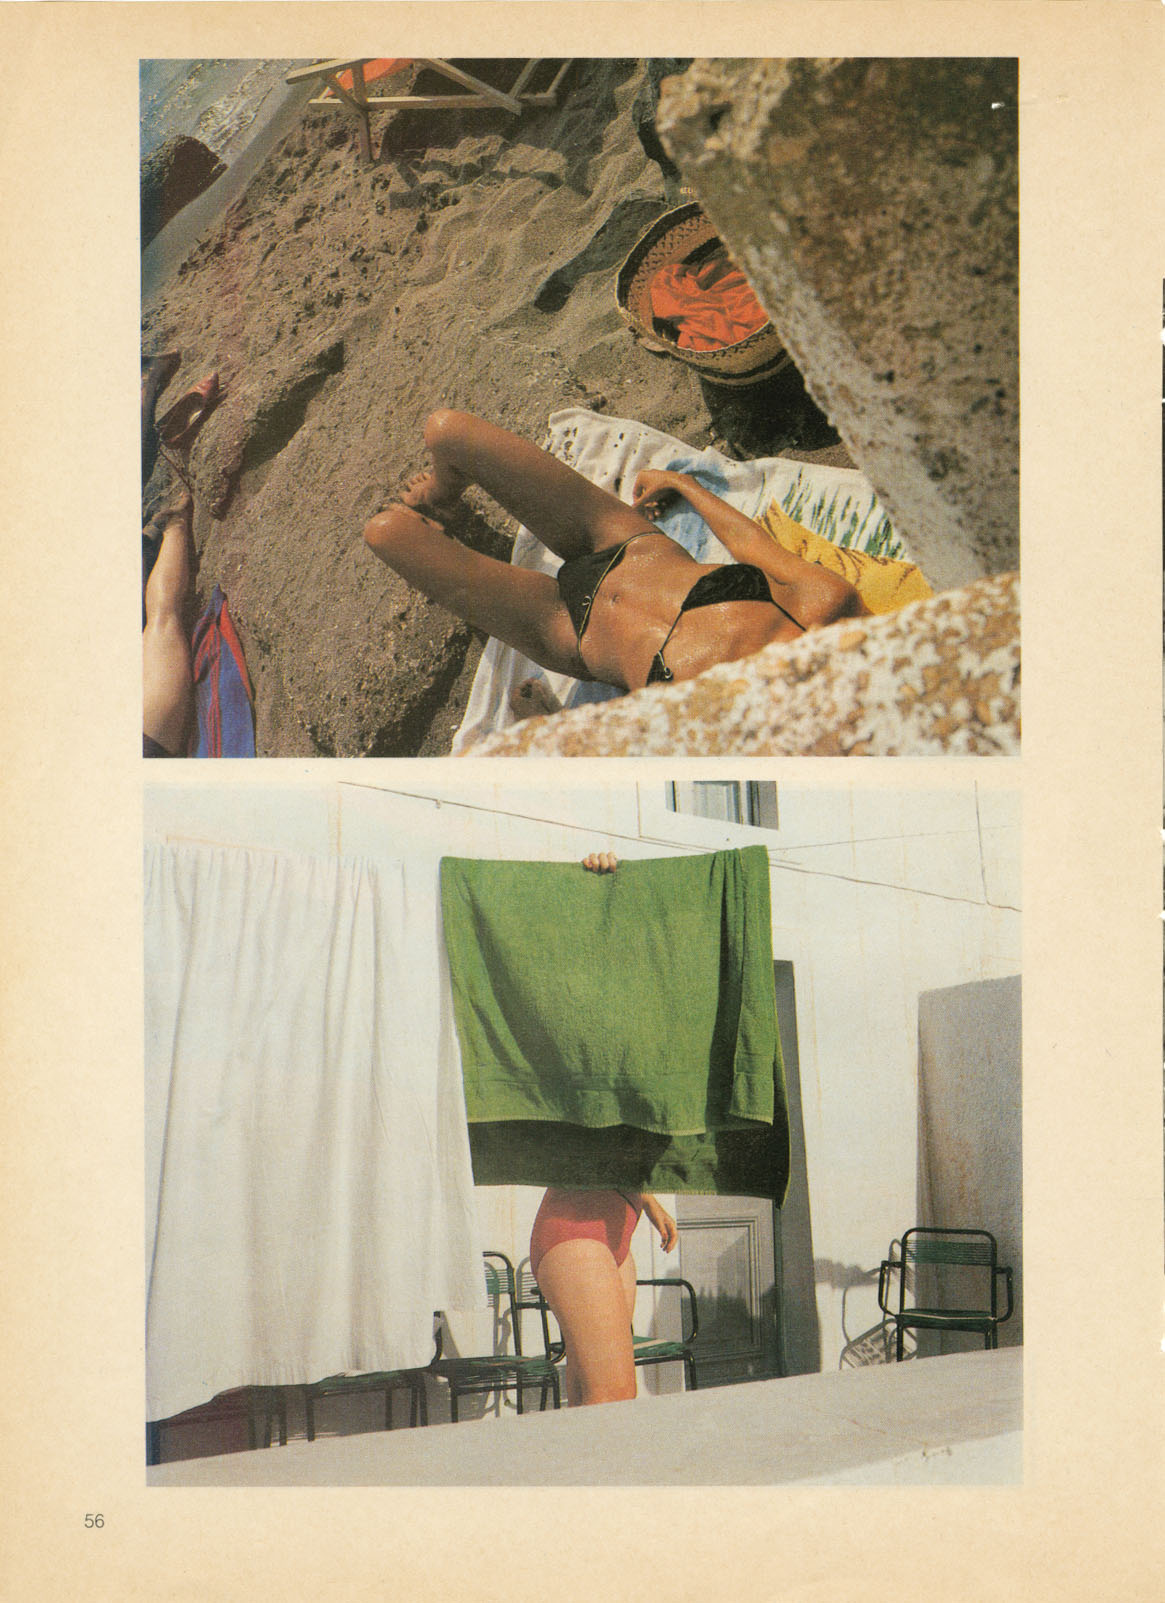 American Photographer - Article about Charles work - 1984 003.jpg